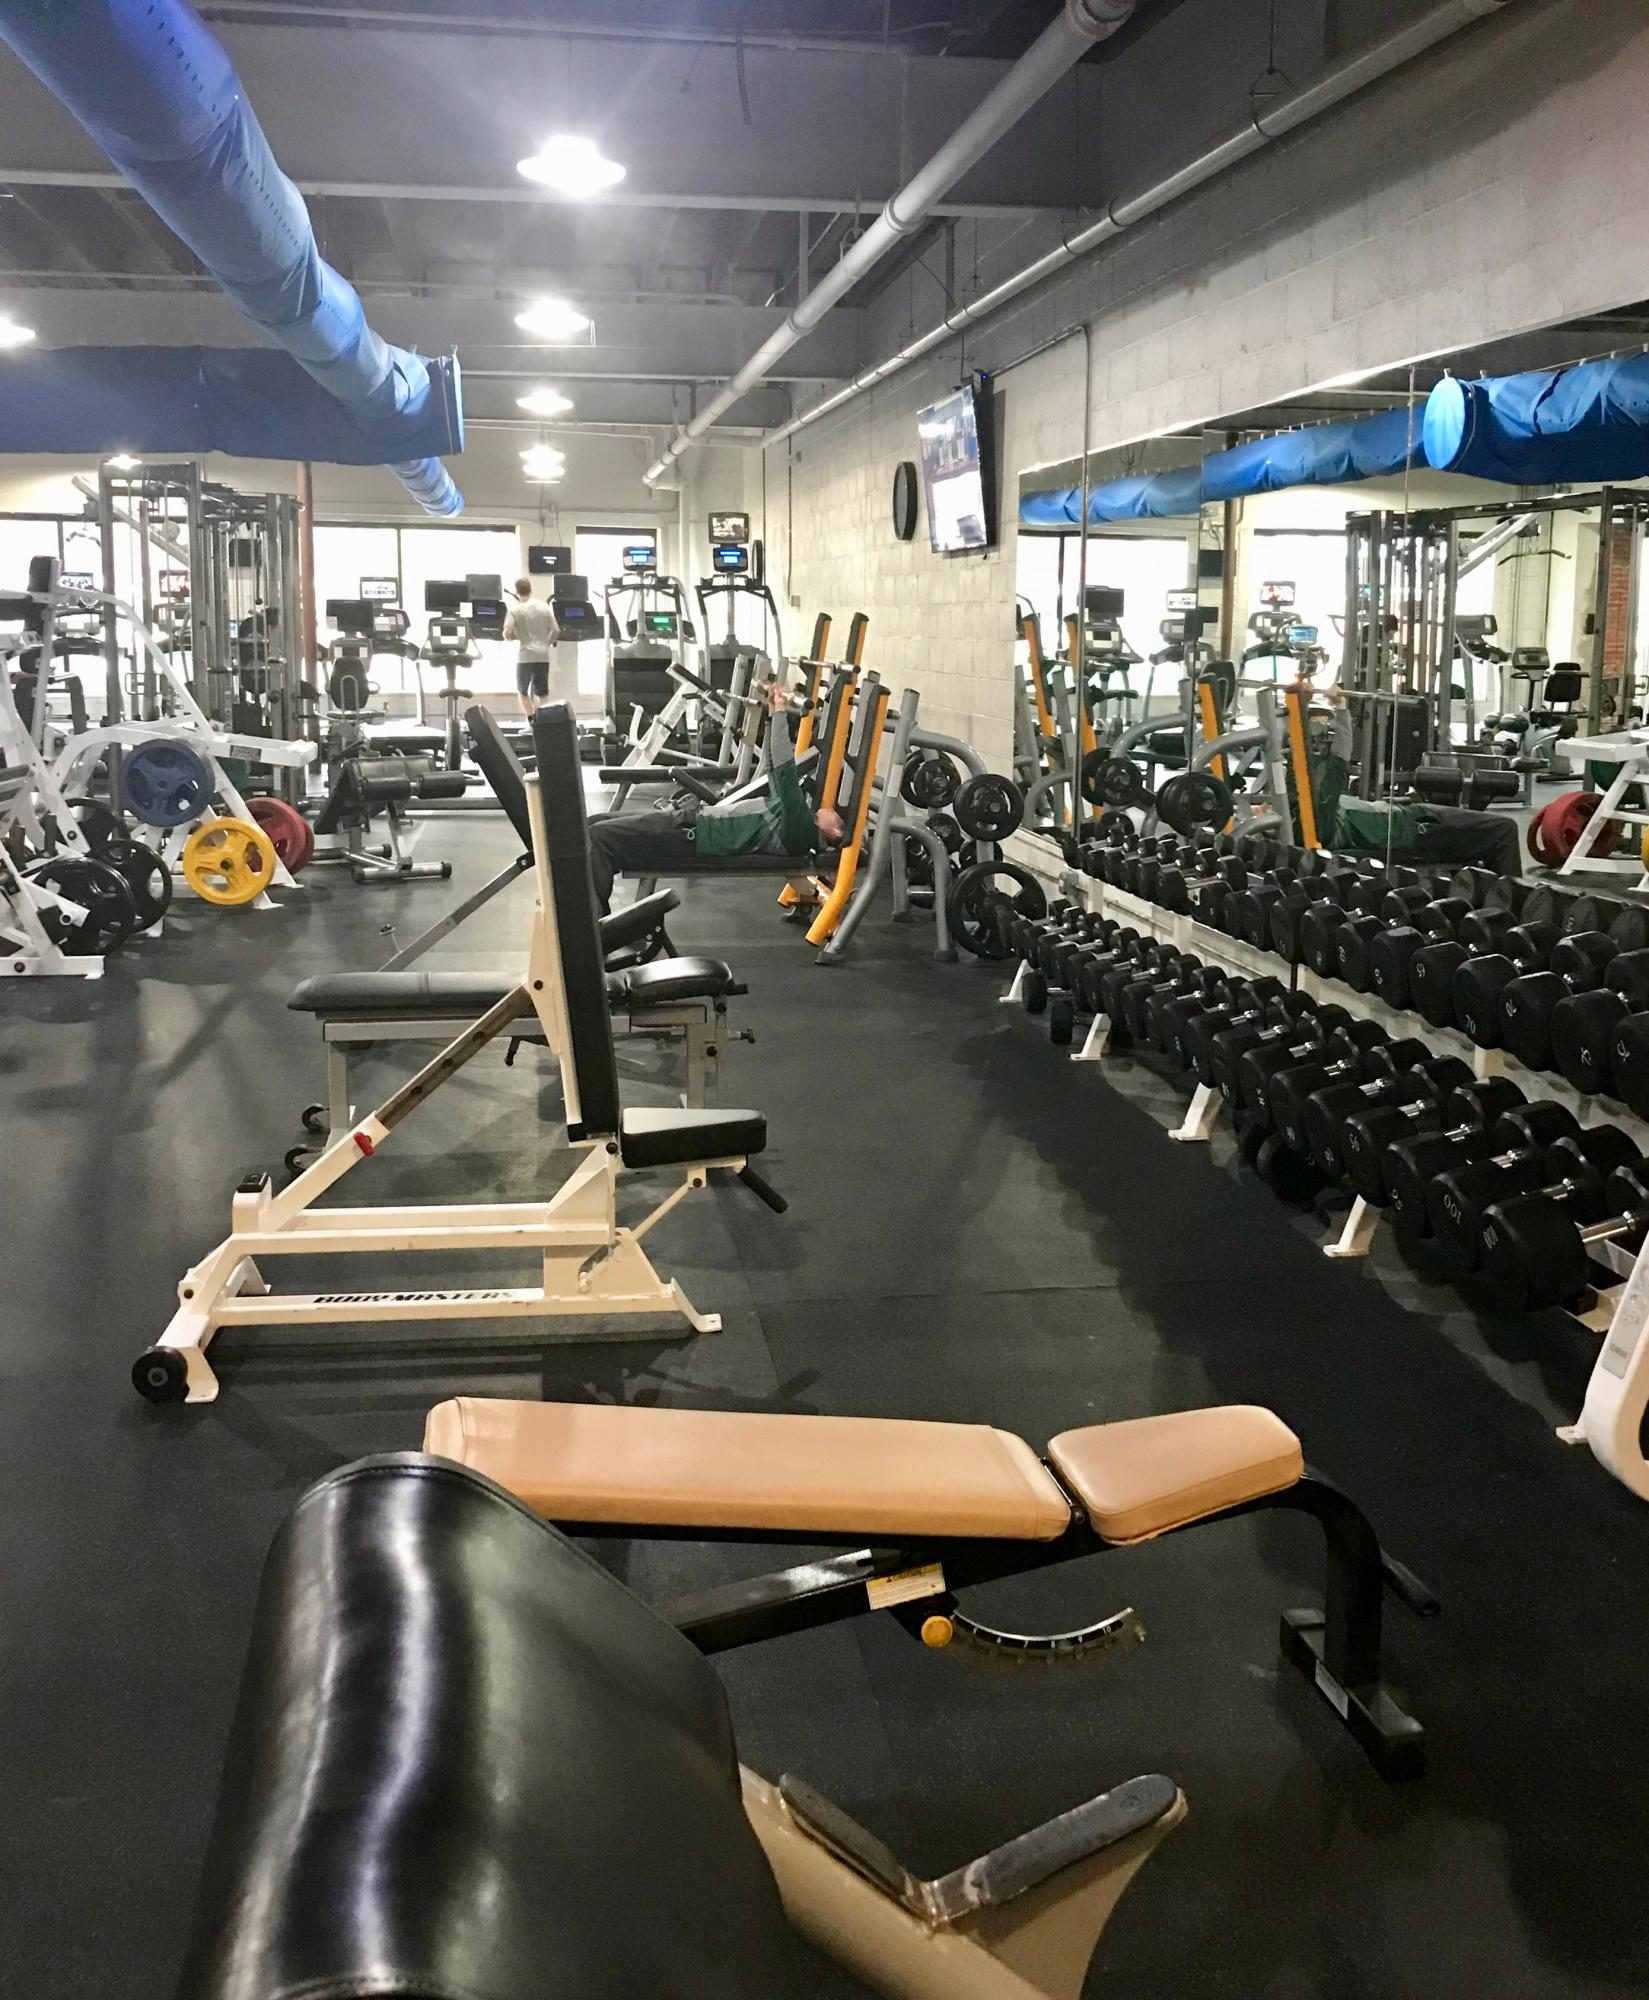 Professional Guaranteed House Painting Western Springs: Elite Fitness + Gym Western Springs IL